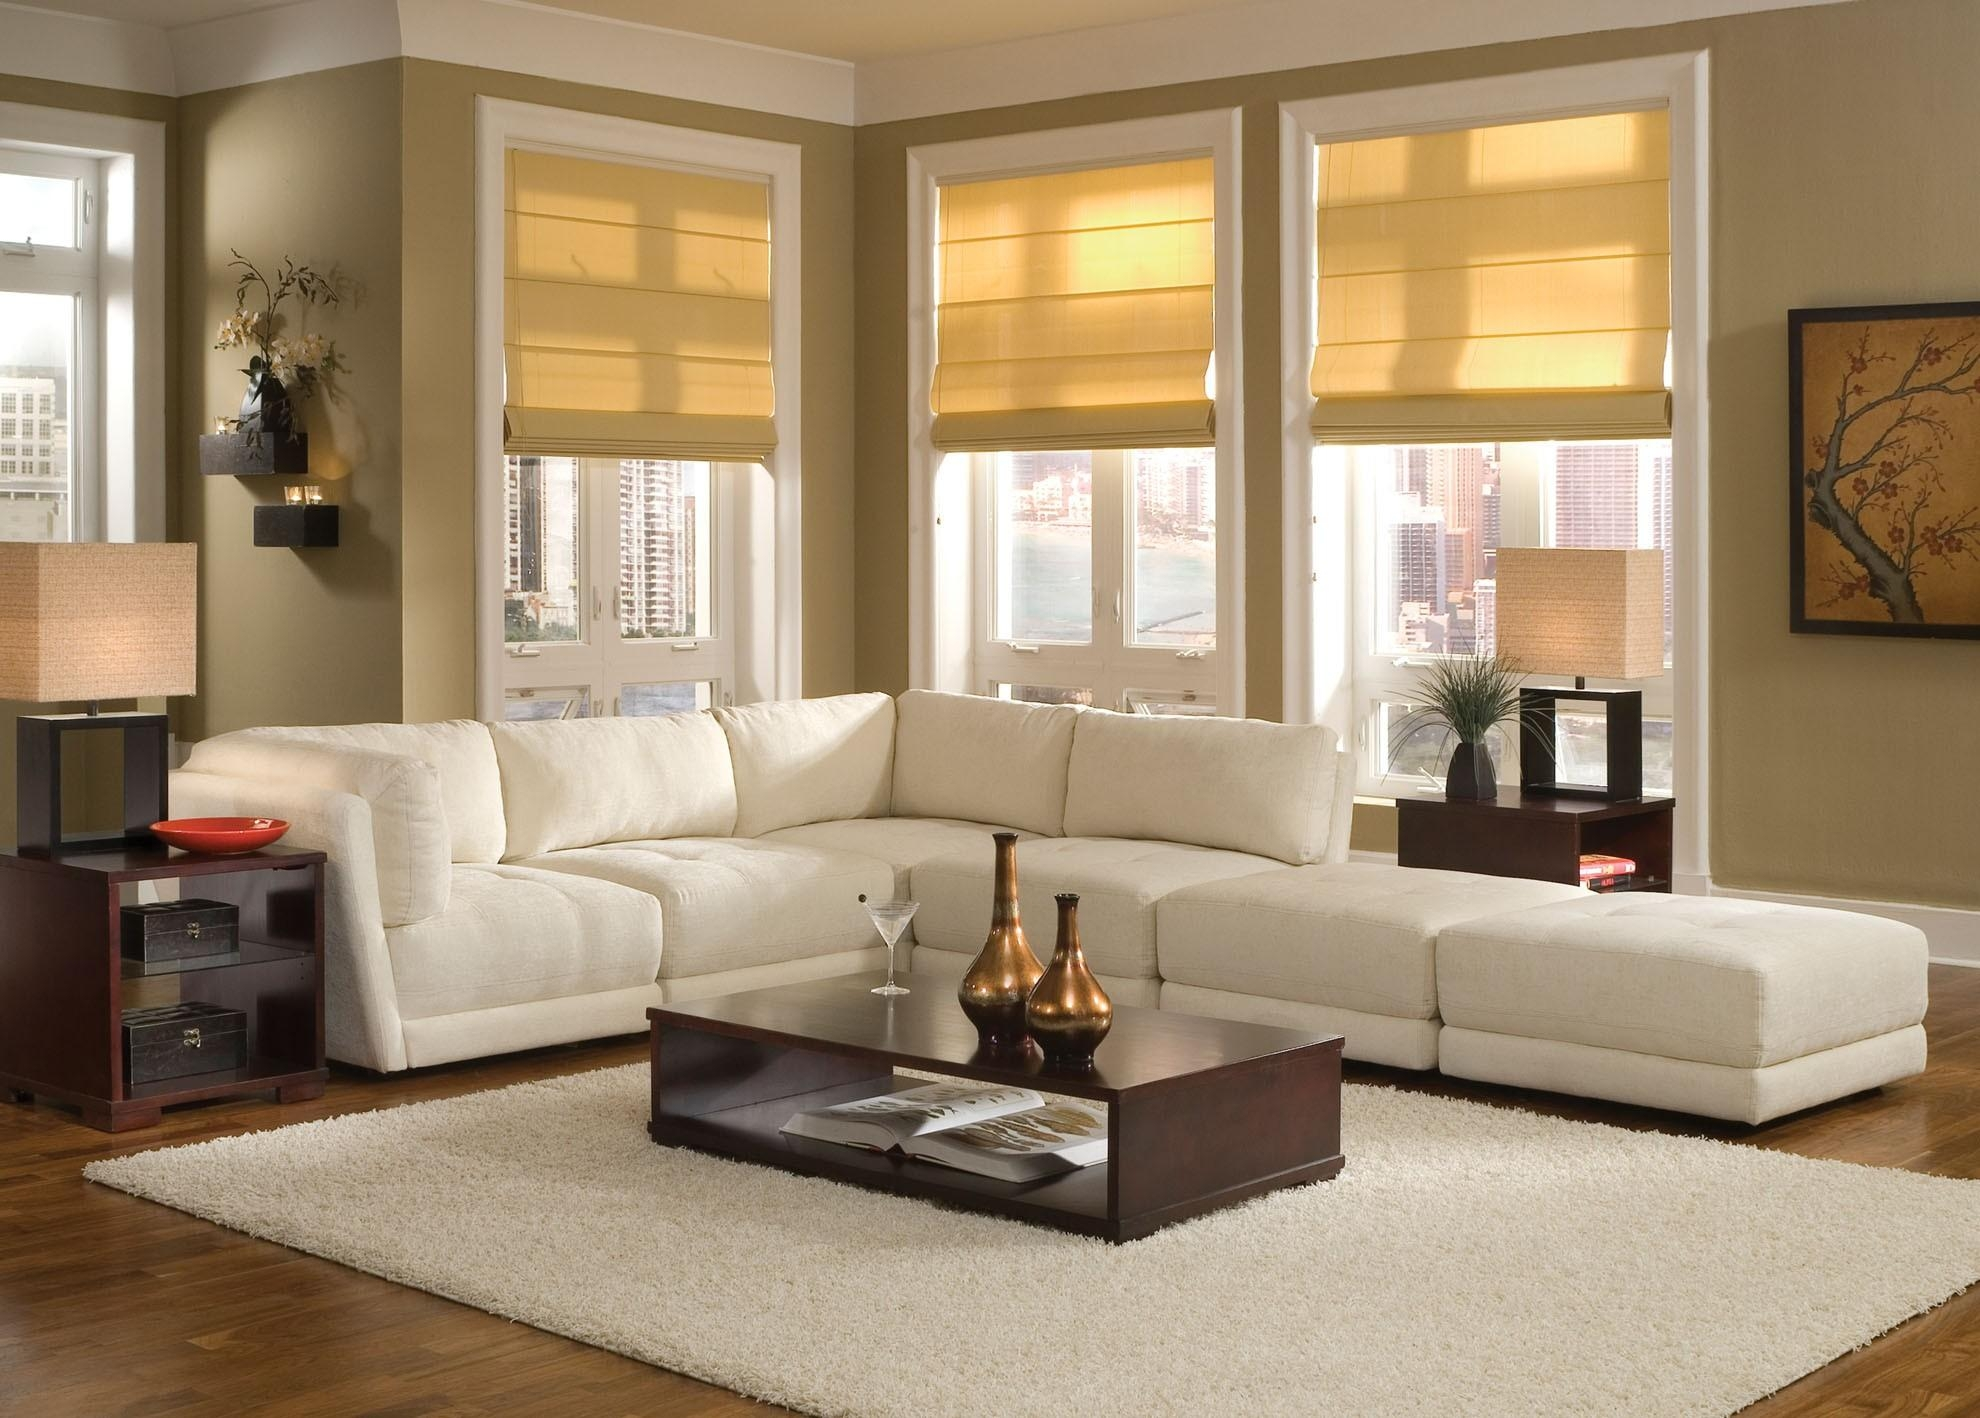 Sofas Center : Huge Leather Sectional Sofa Creative Home Inside Huge Leather Sectional (View 9 of 20)